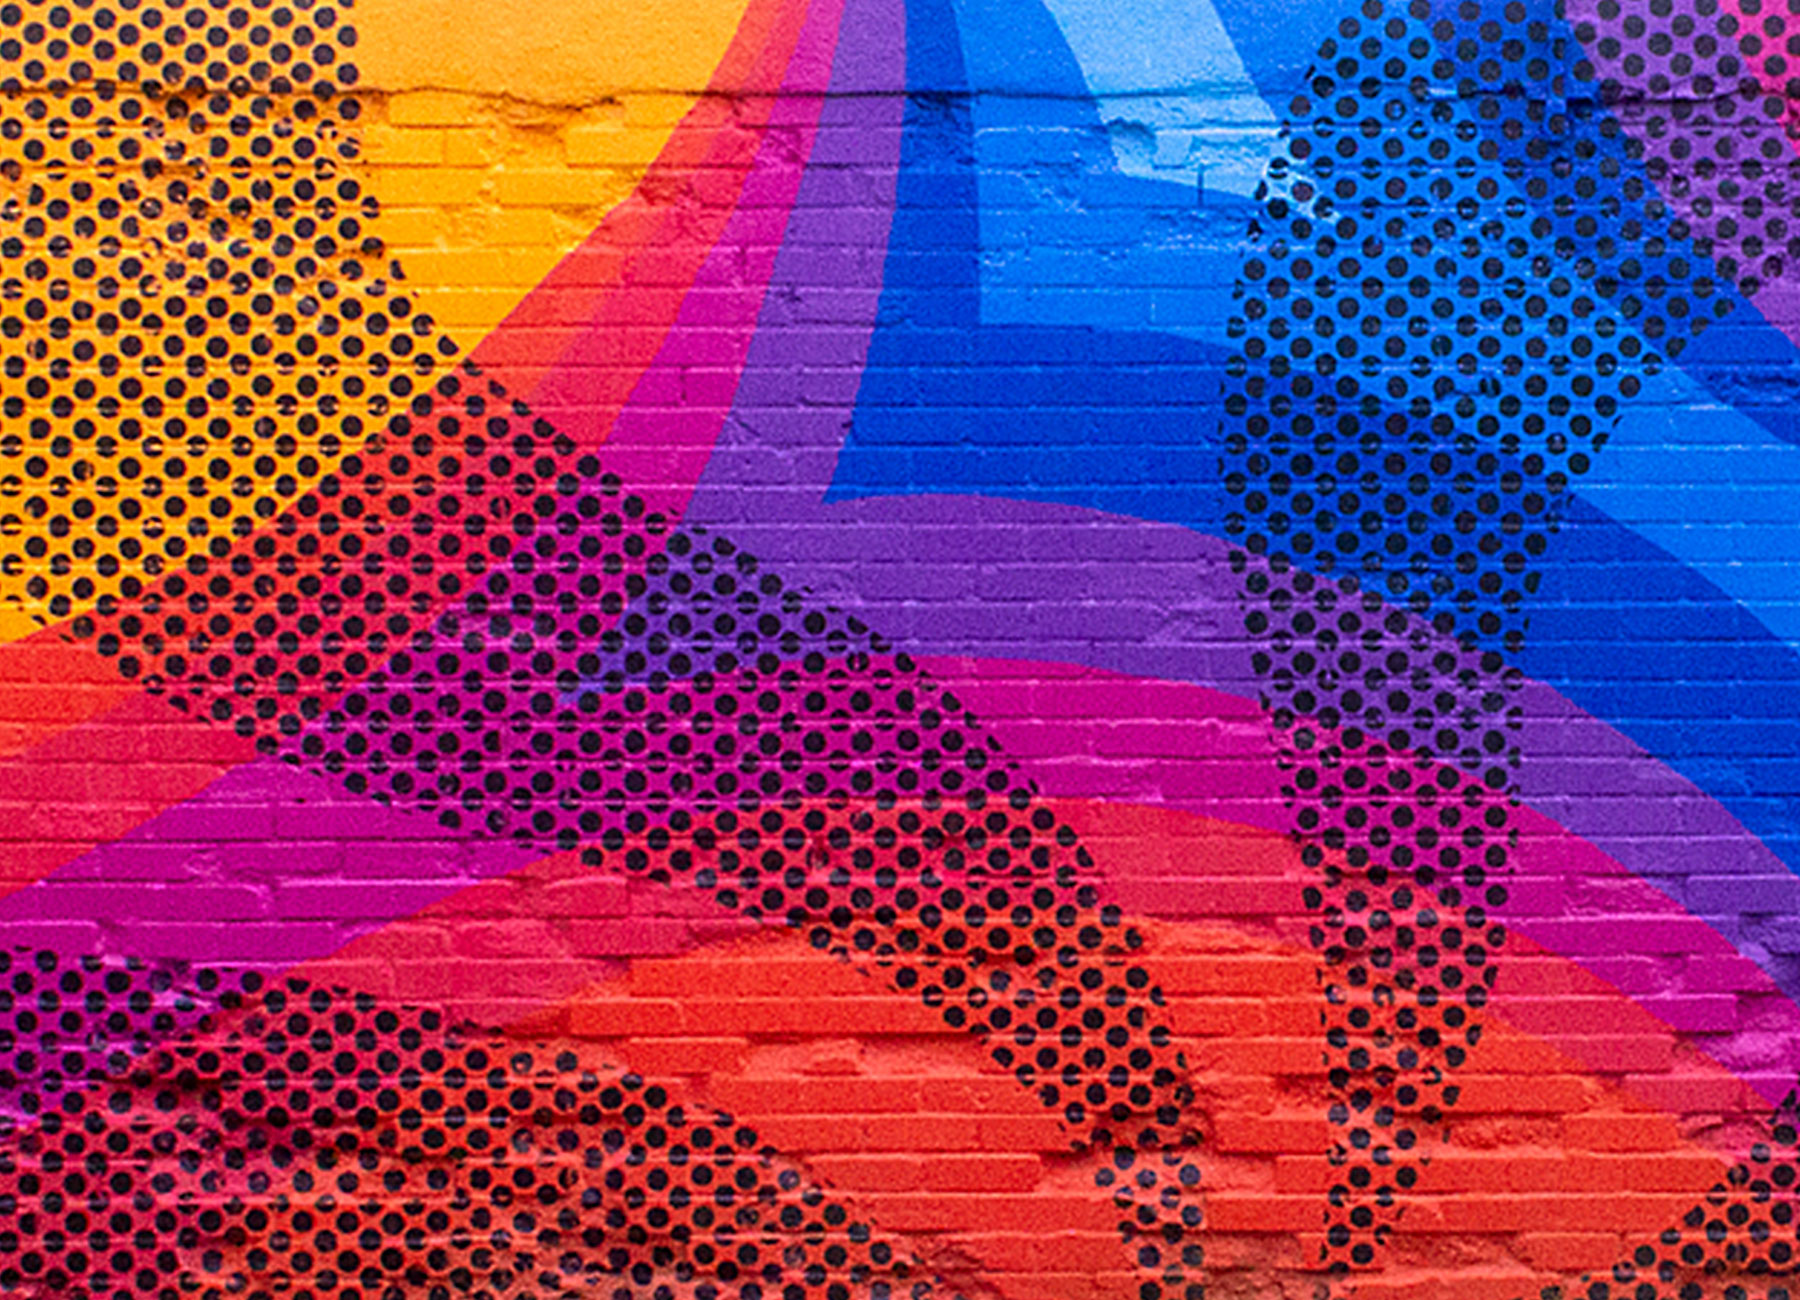 A mural painted on an old brick garage. The design has gradated circles changing from yellow to pink to blue with wavy rays with black polka dot pattern.